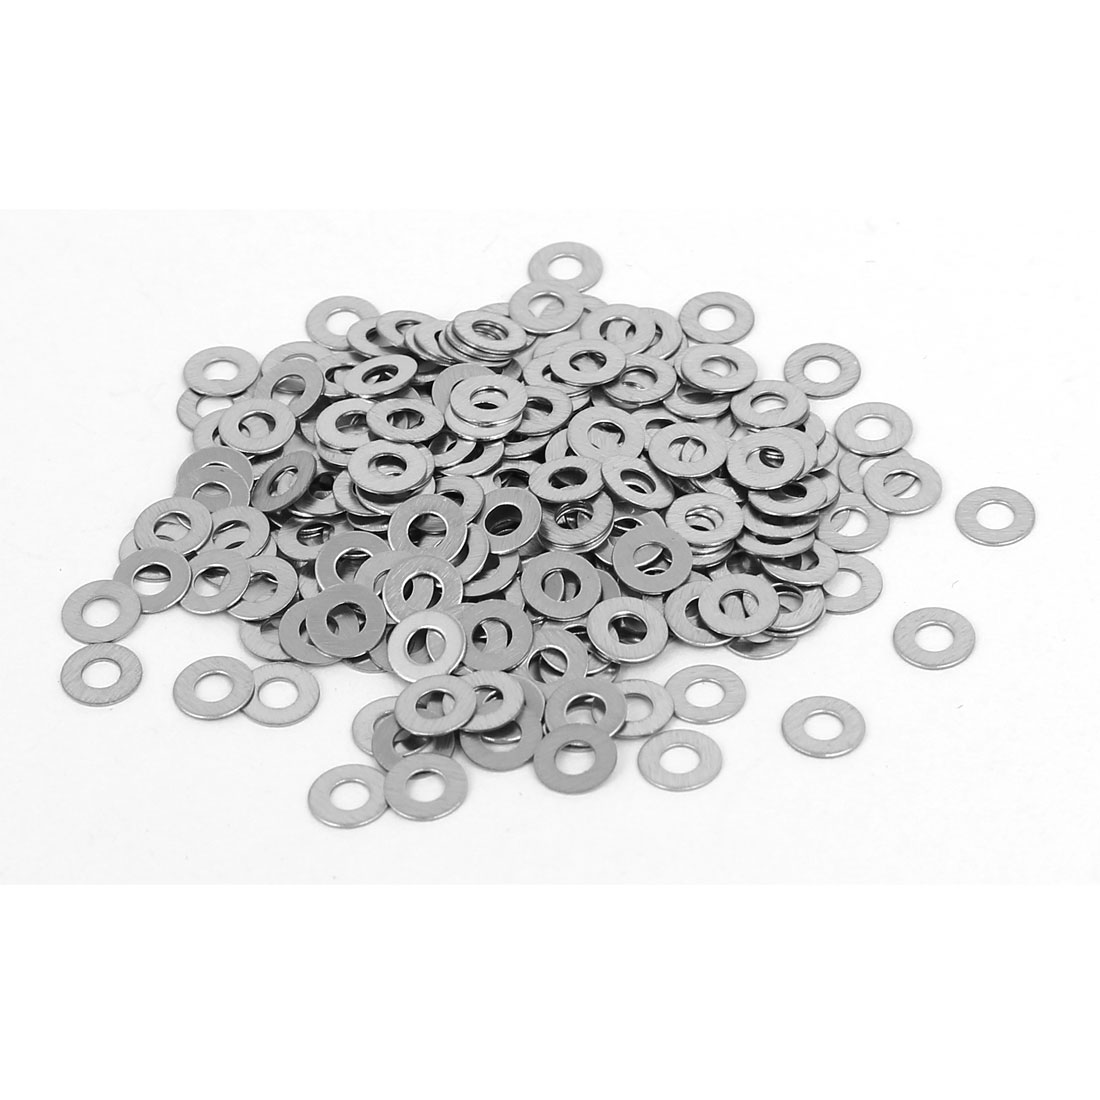 M2 304 Stainless Steel Flat Pads Washers Gaskets Silver Tone 300PCS